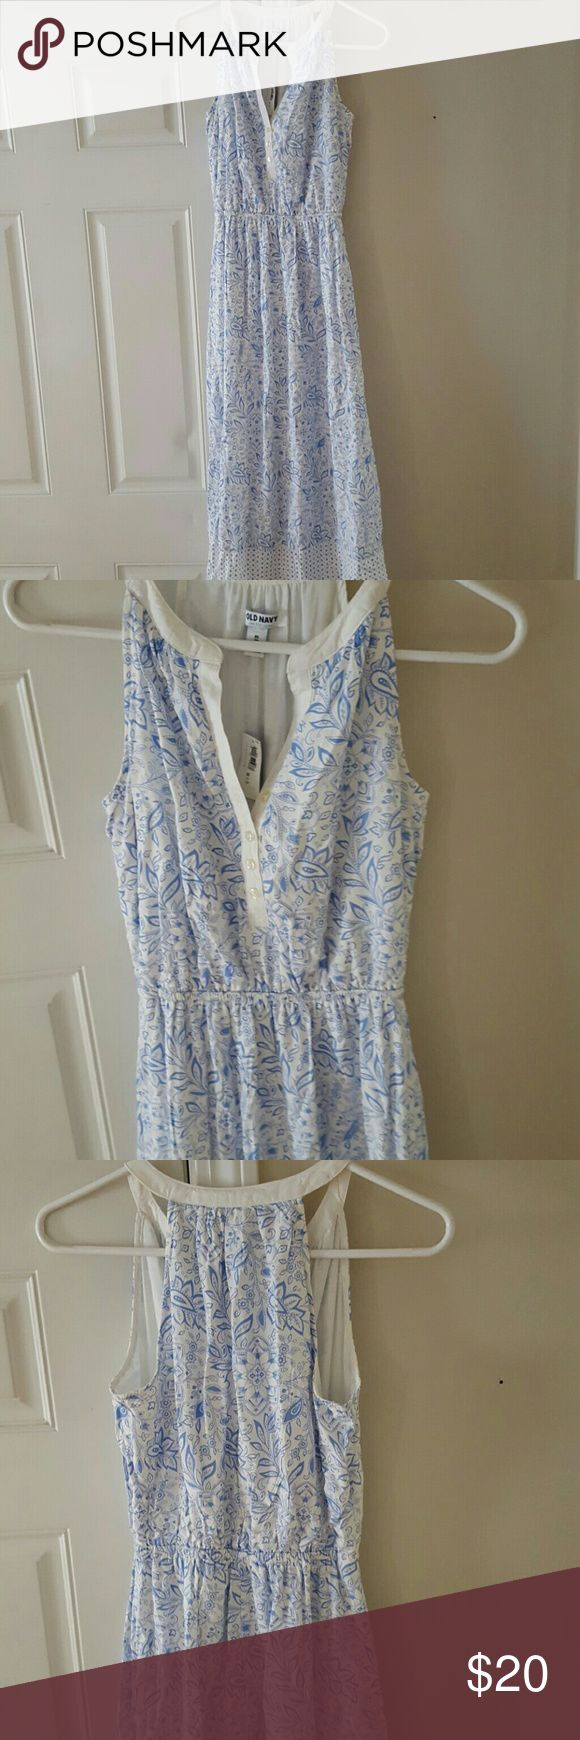 Blue and White Maxi Dress NWT pretty blue and white Maxi dress from Old Navy. Flowy and light weight, it's really comfortable but just a bit too long for me. Looks cute with a denim jacket. Old Navy Dresses Maxi